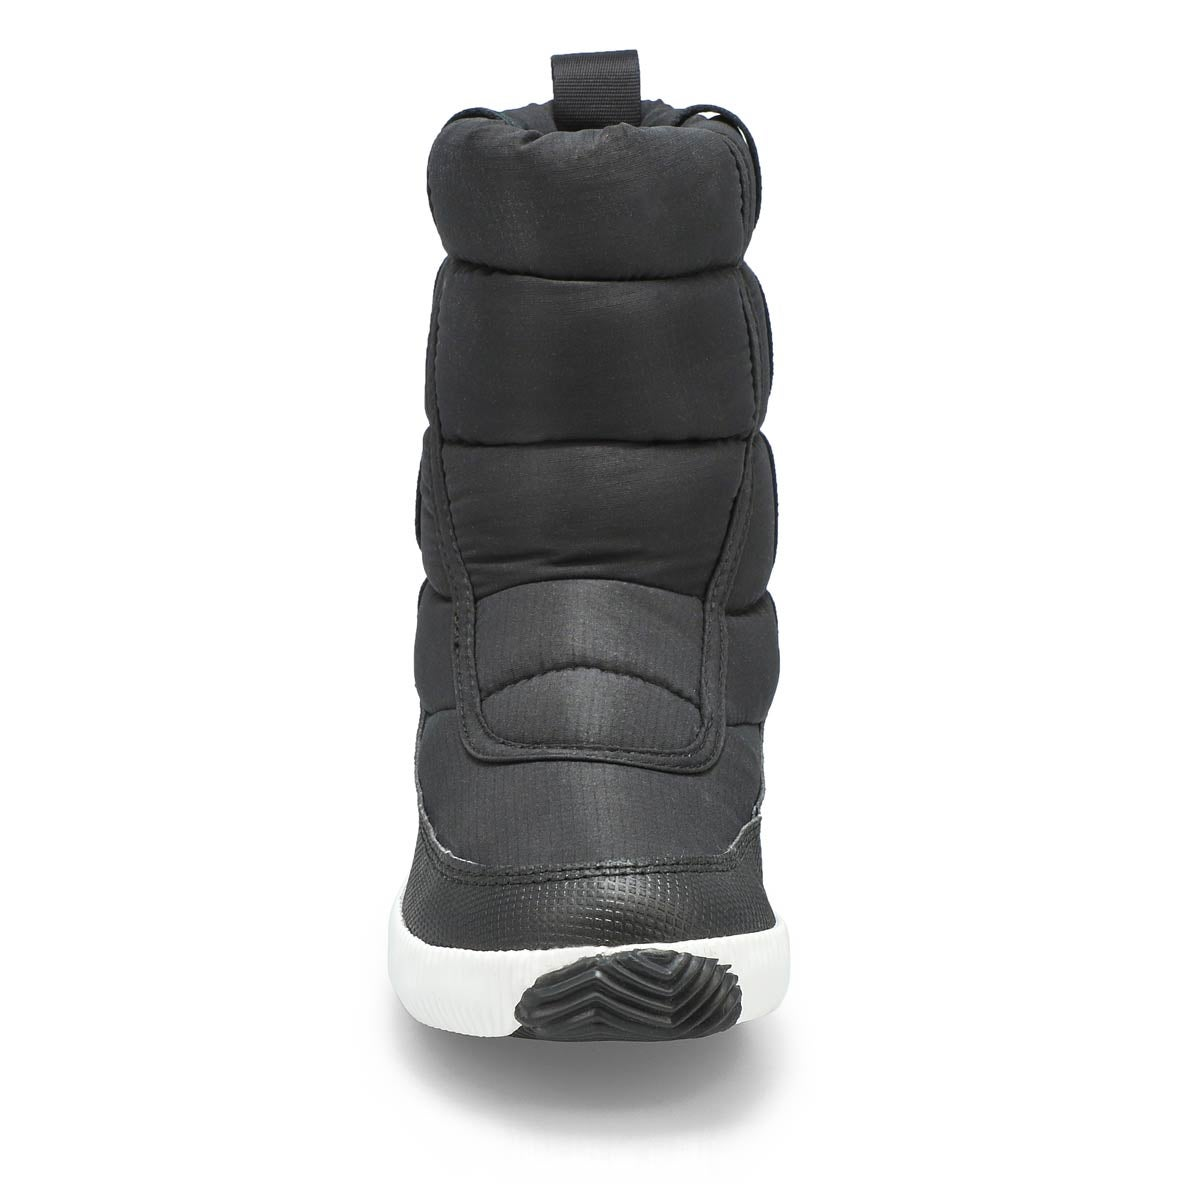 Women's Out'N About Plus Winter Boot - Black